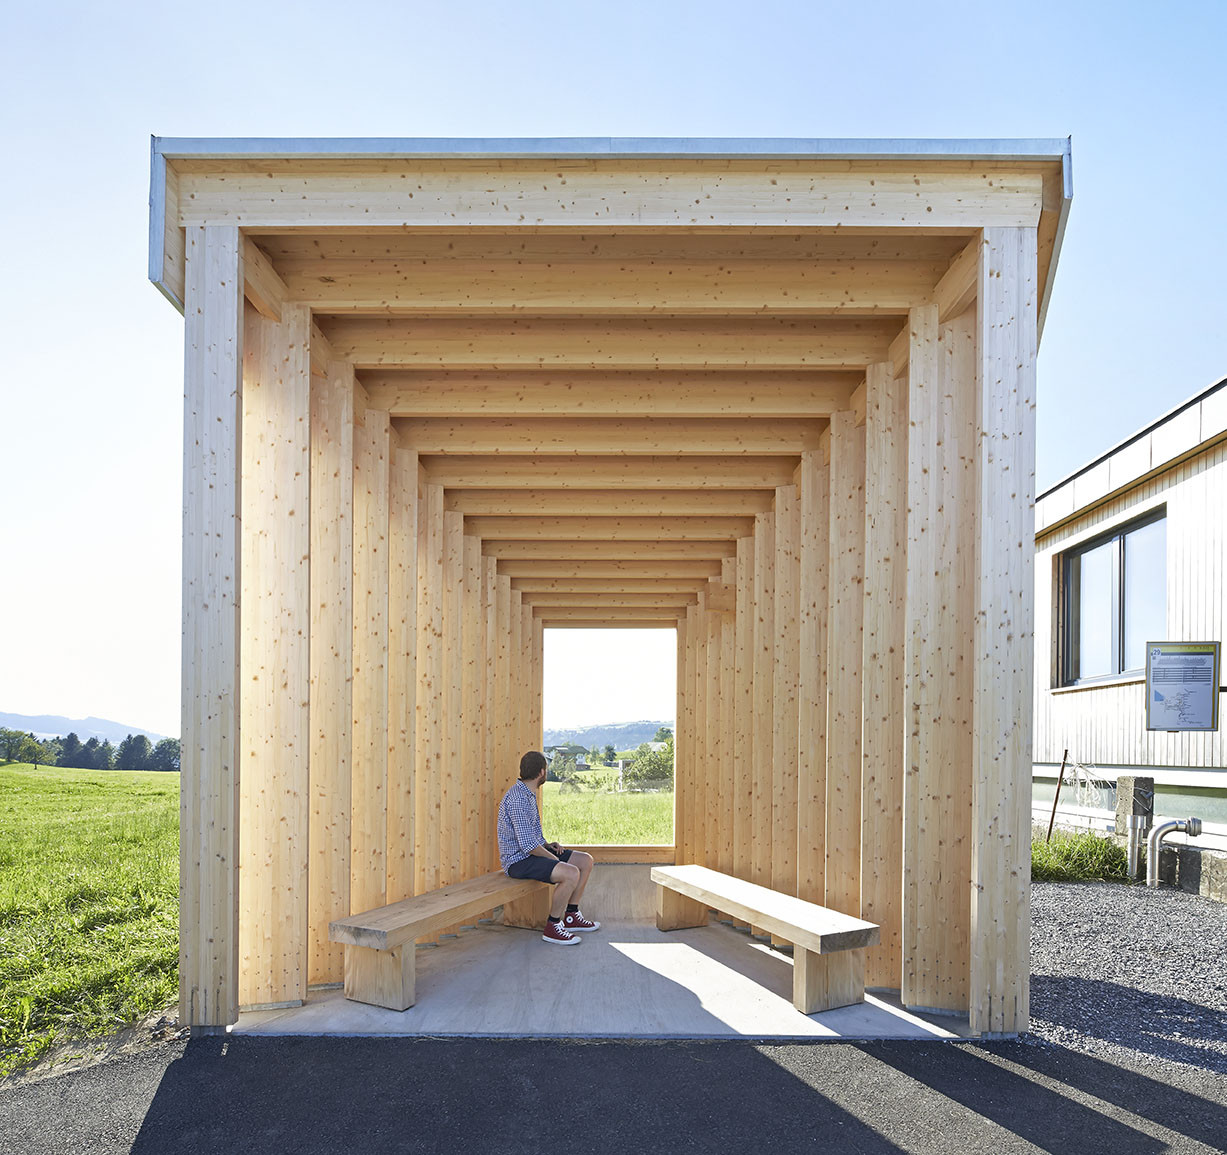 New Images Released of Krumbach, Austria's Famous Bus Stops,© Hufton + Crow